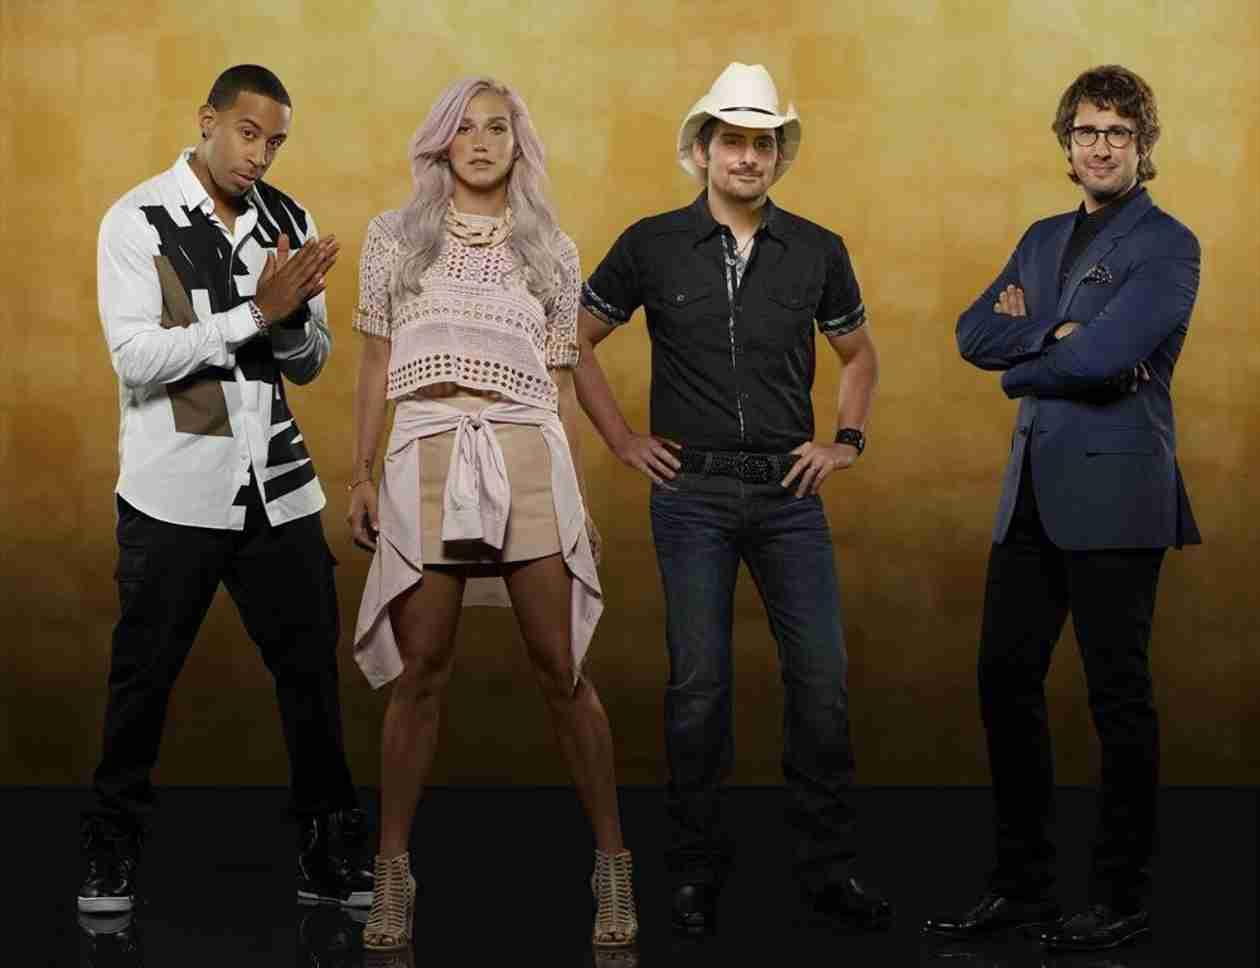 When Does ABC's Rising Star Premiere?